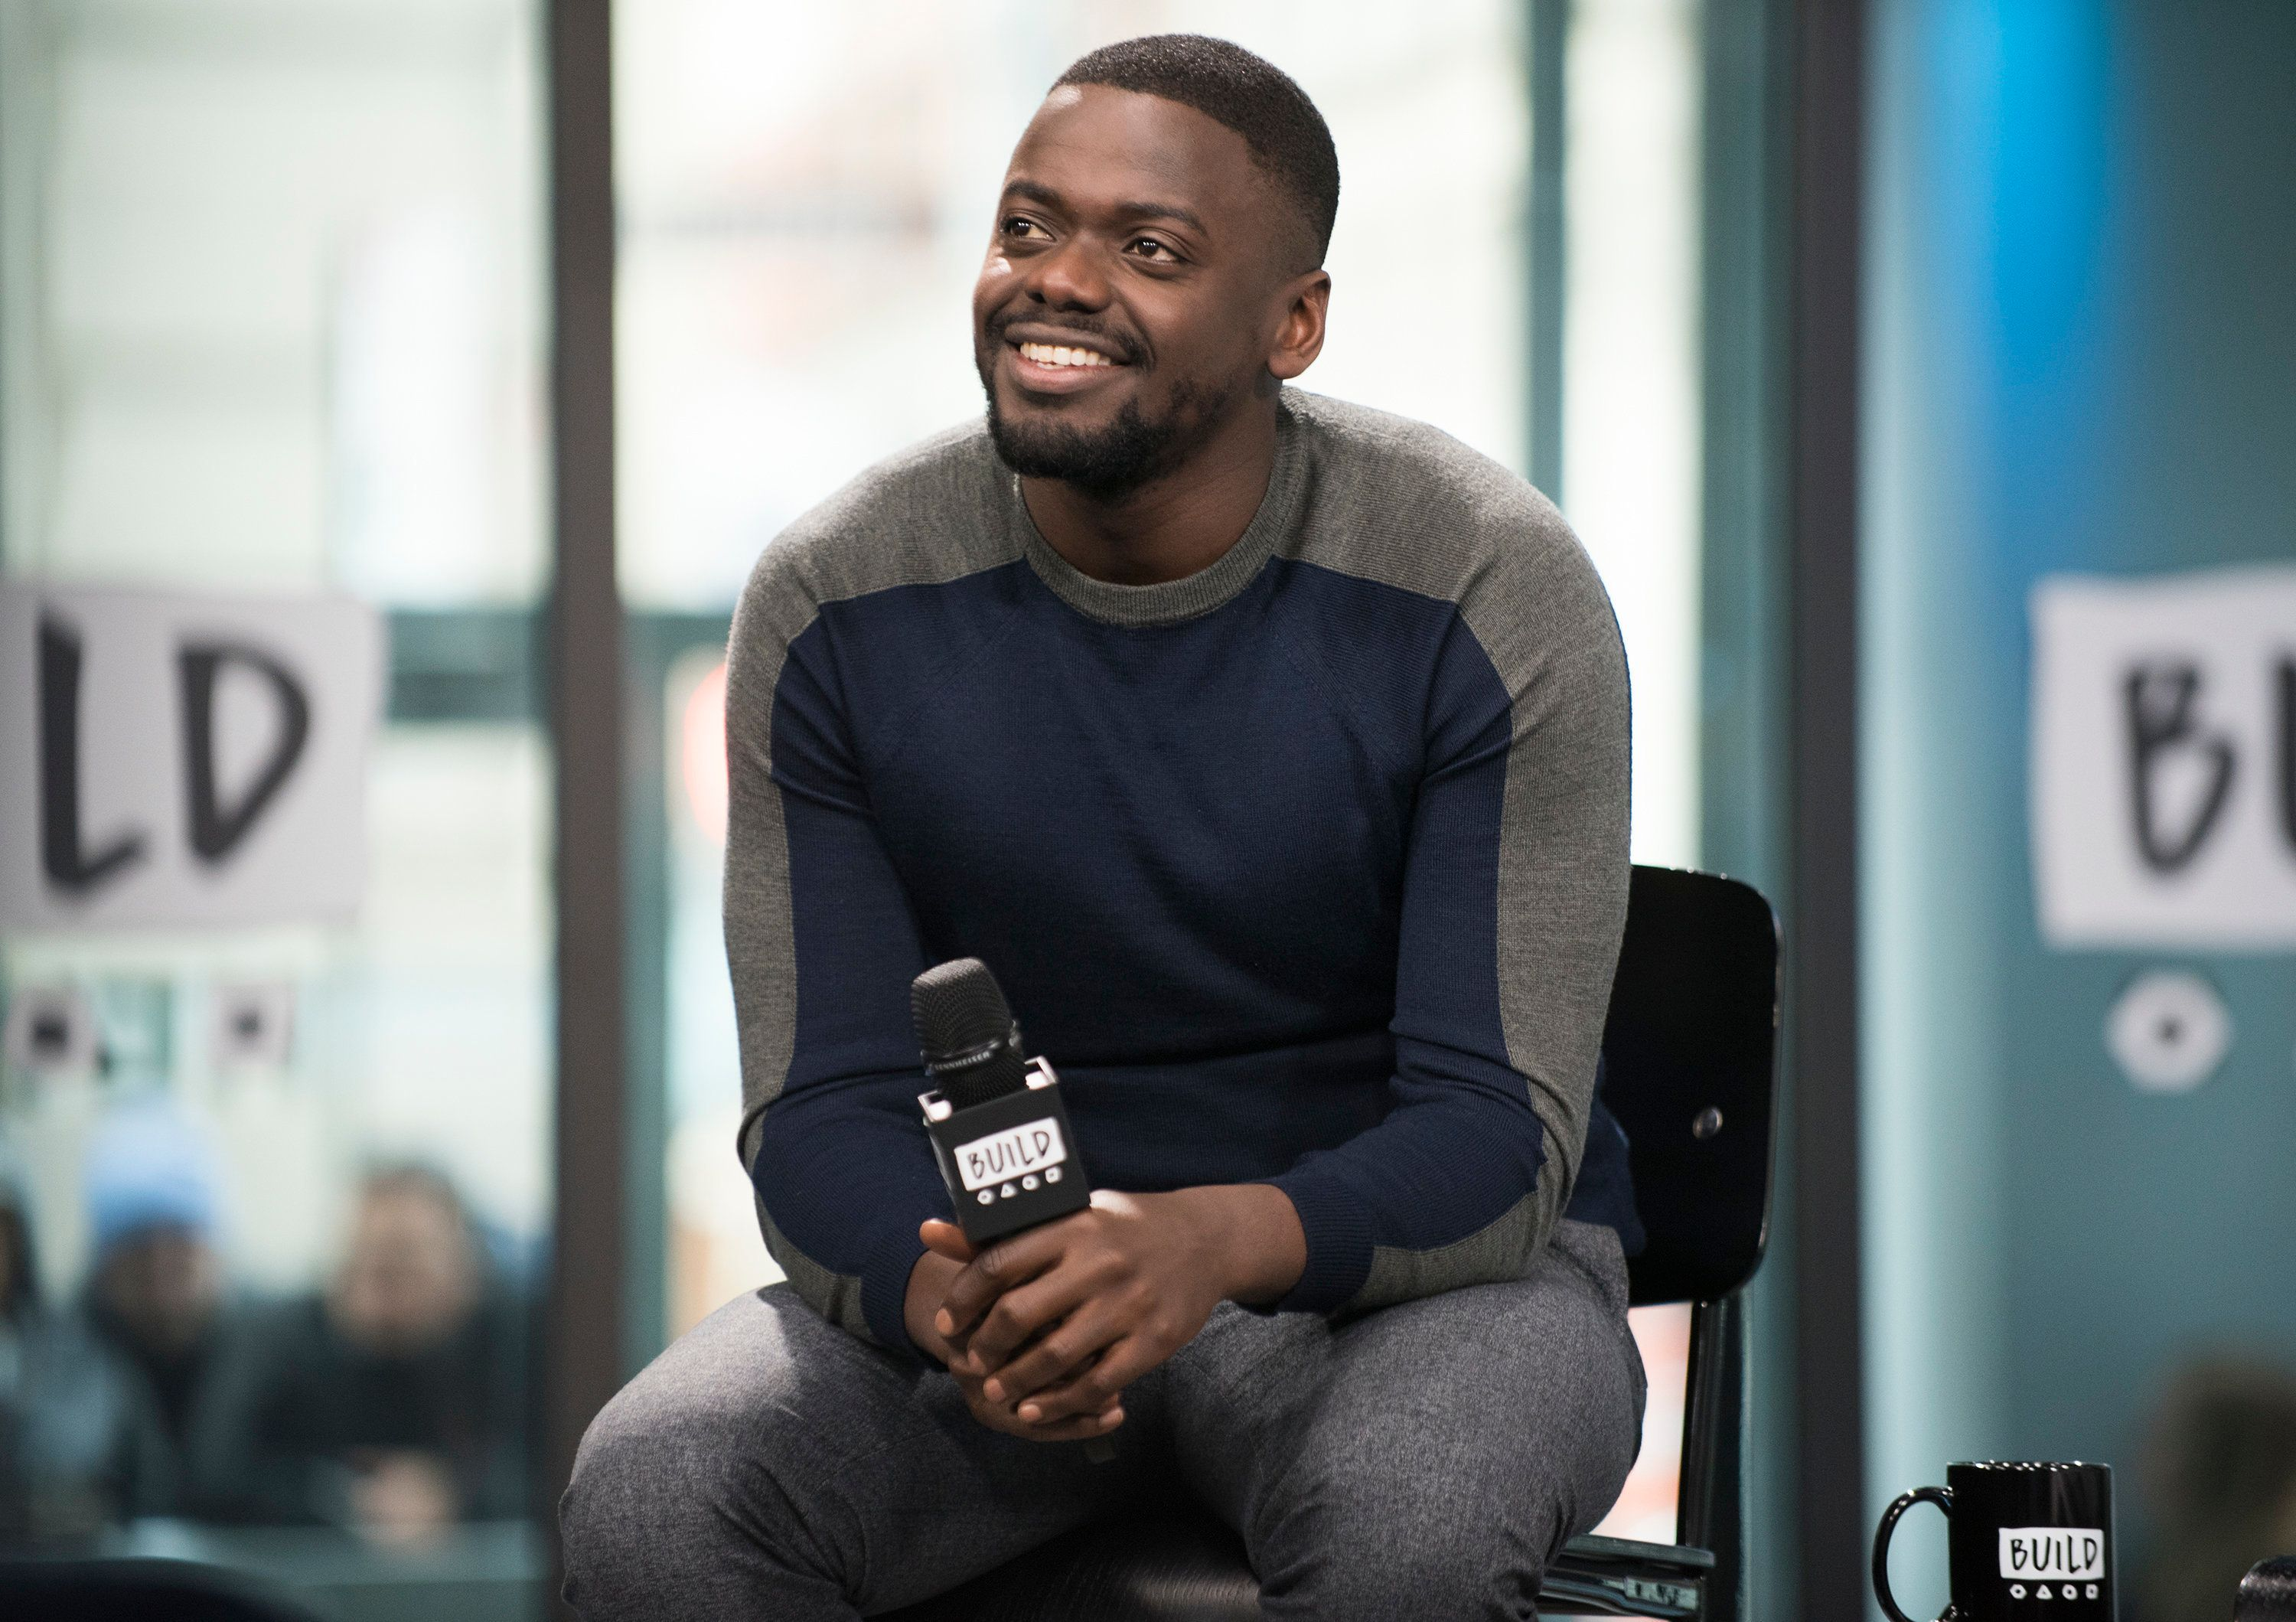 'Get Out' Star Daniel Kaluuya Responds To Samuel L Jackson's Controversial Casting